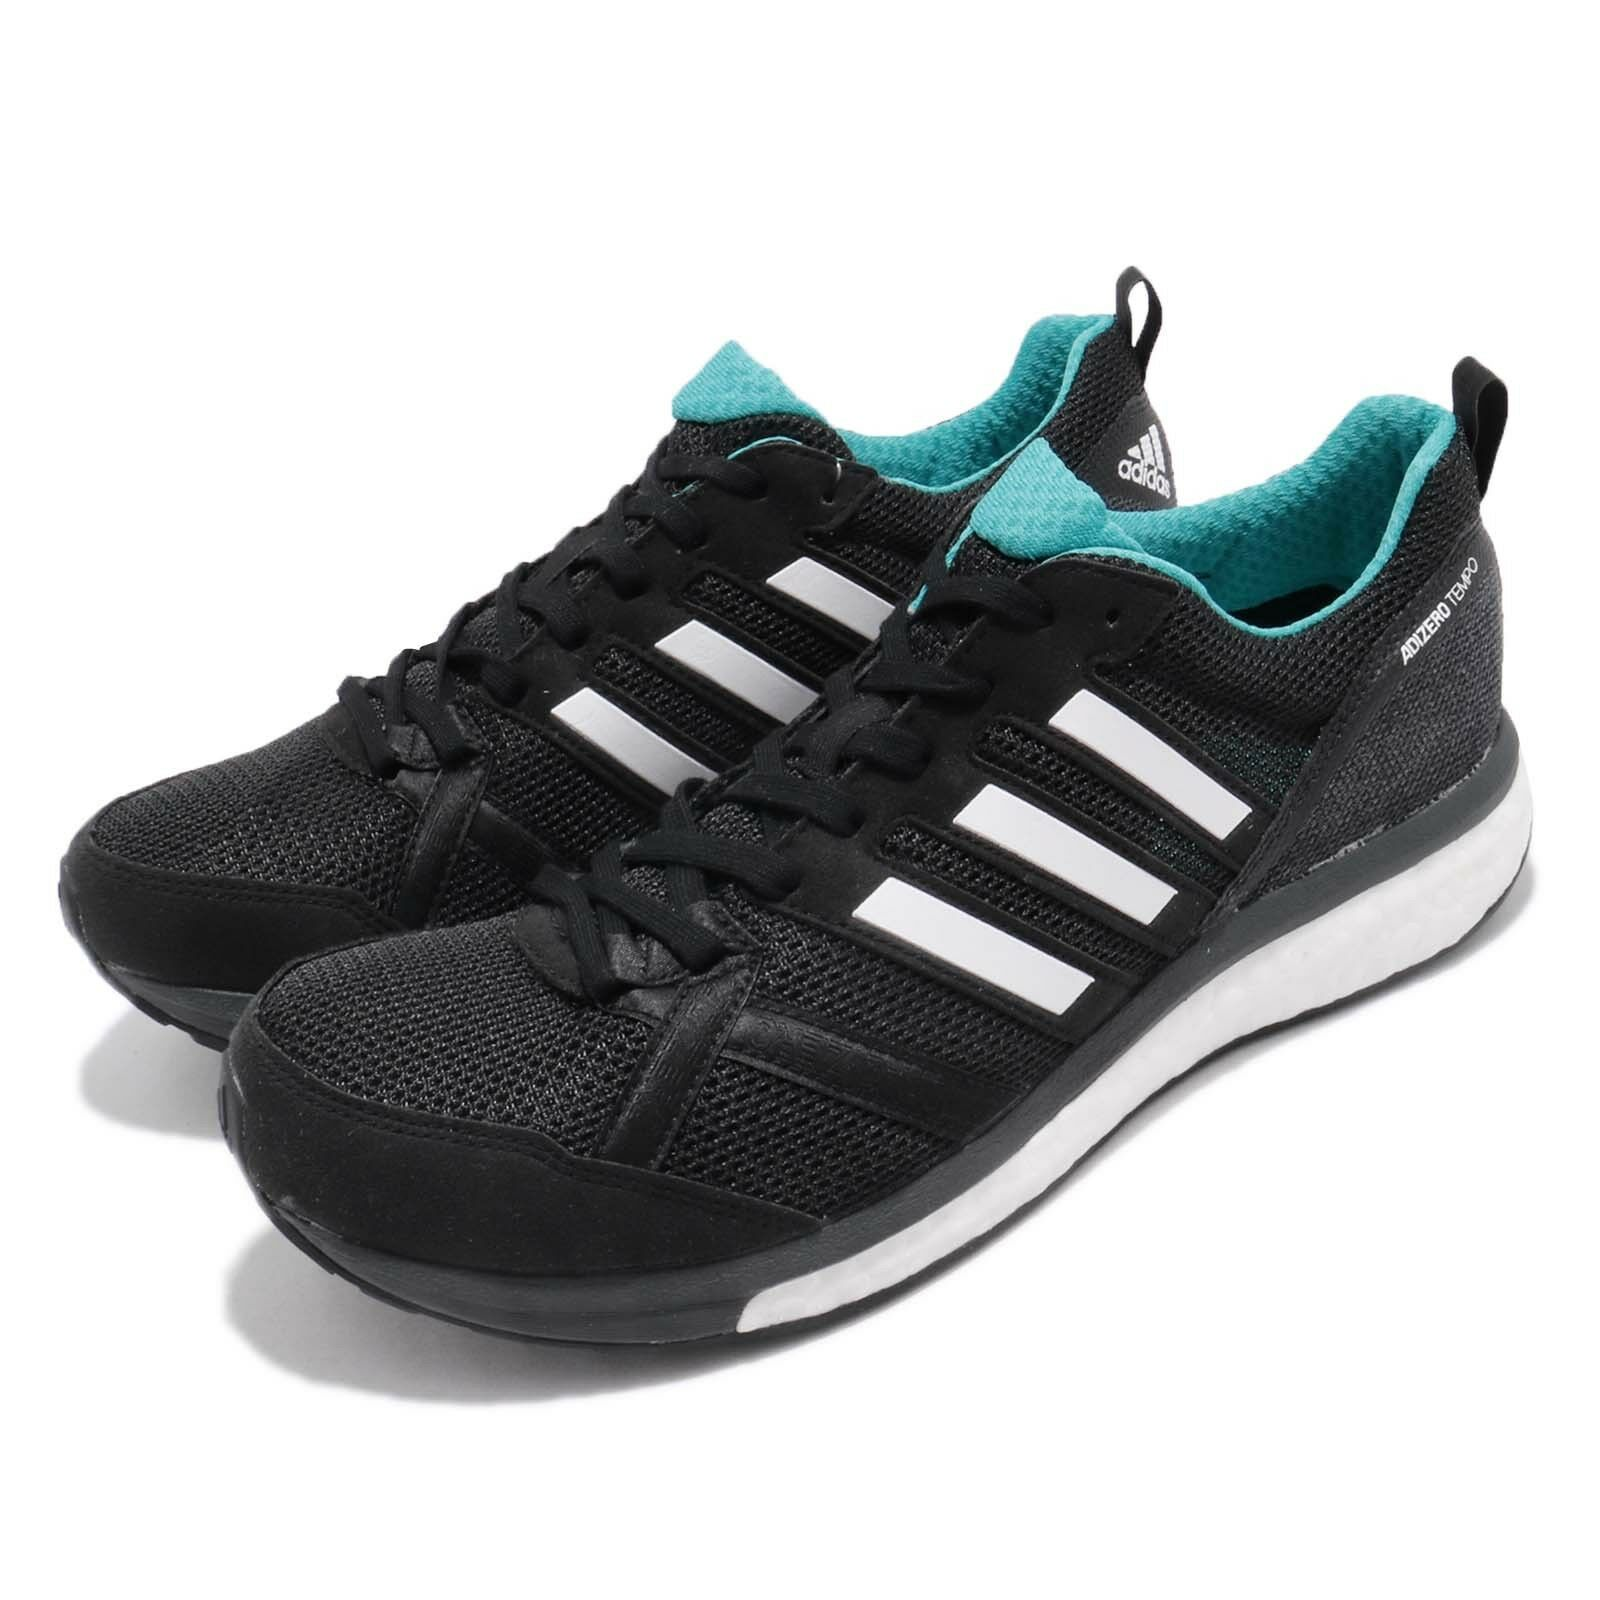 adidas Tempo 9 IX Adizero Boost Men Pick / Women W Running Chaussures Baskets Pick Men 1 2da092